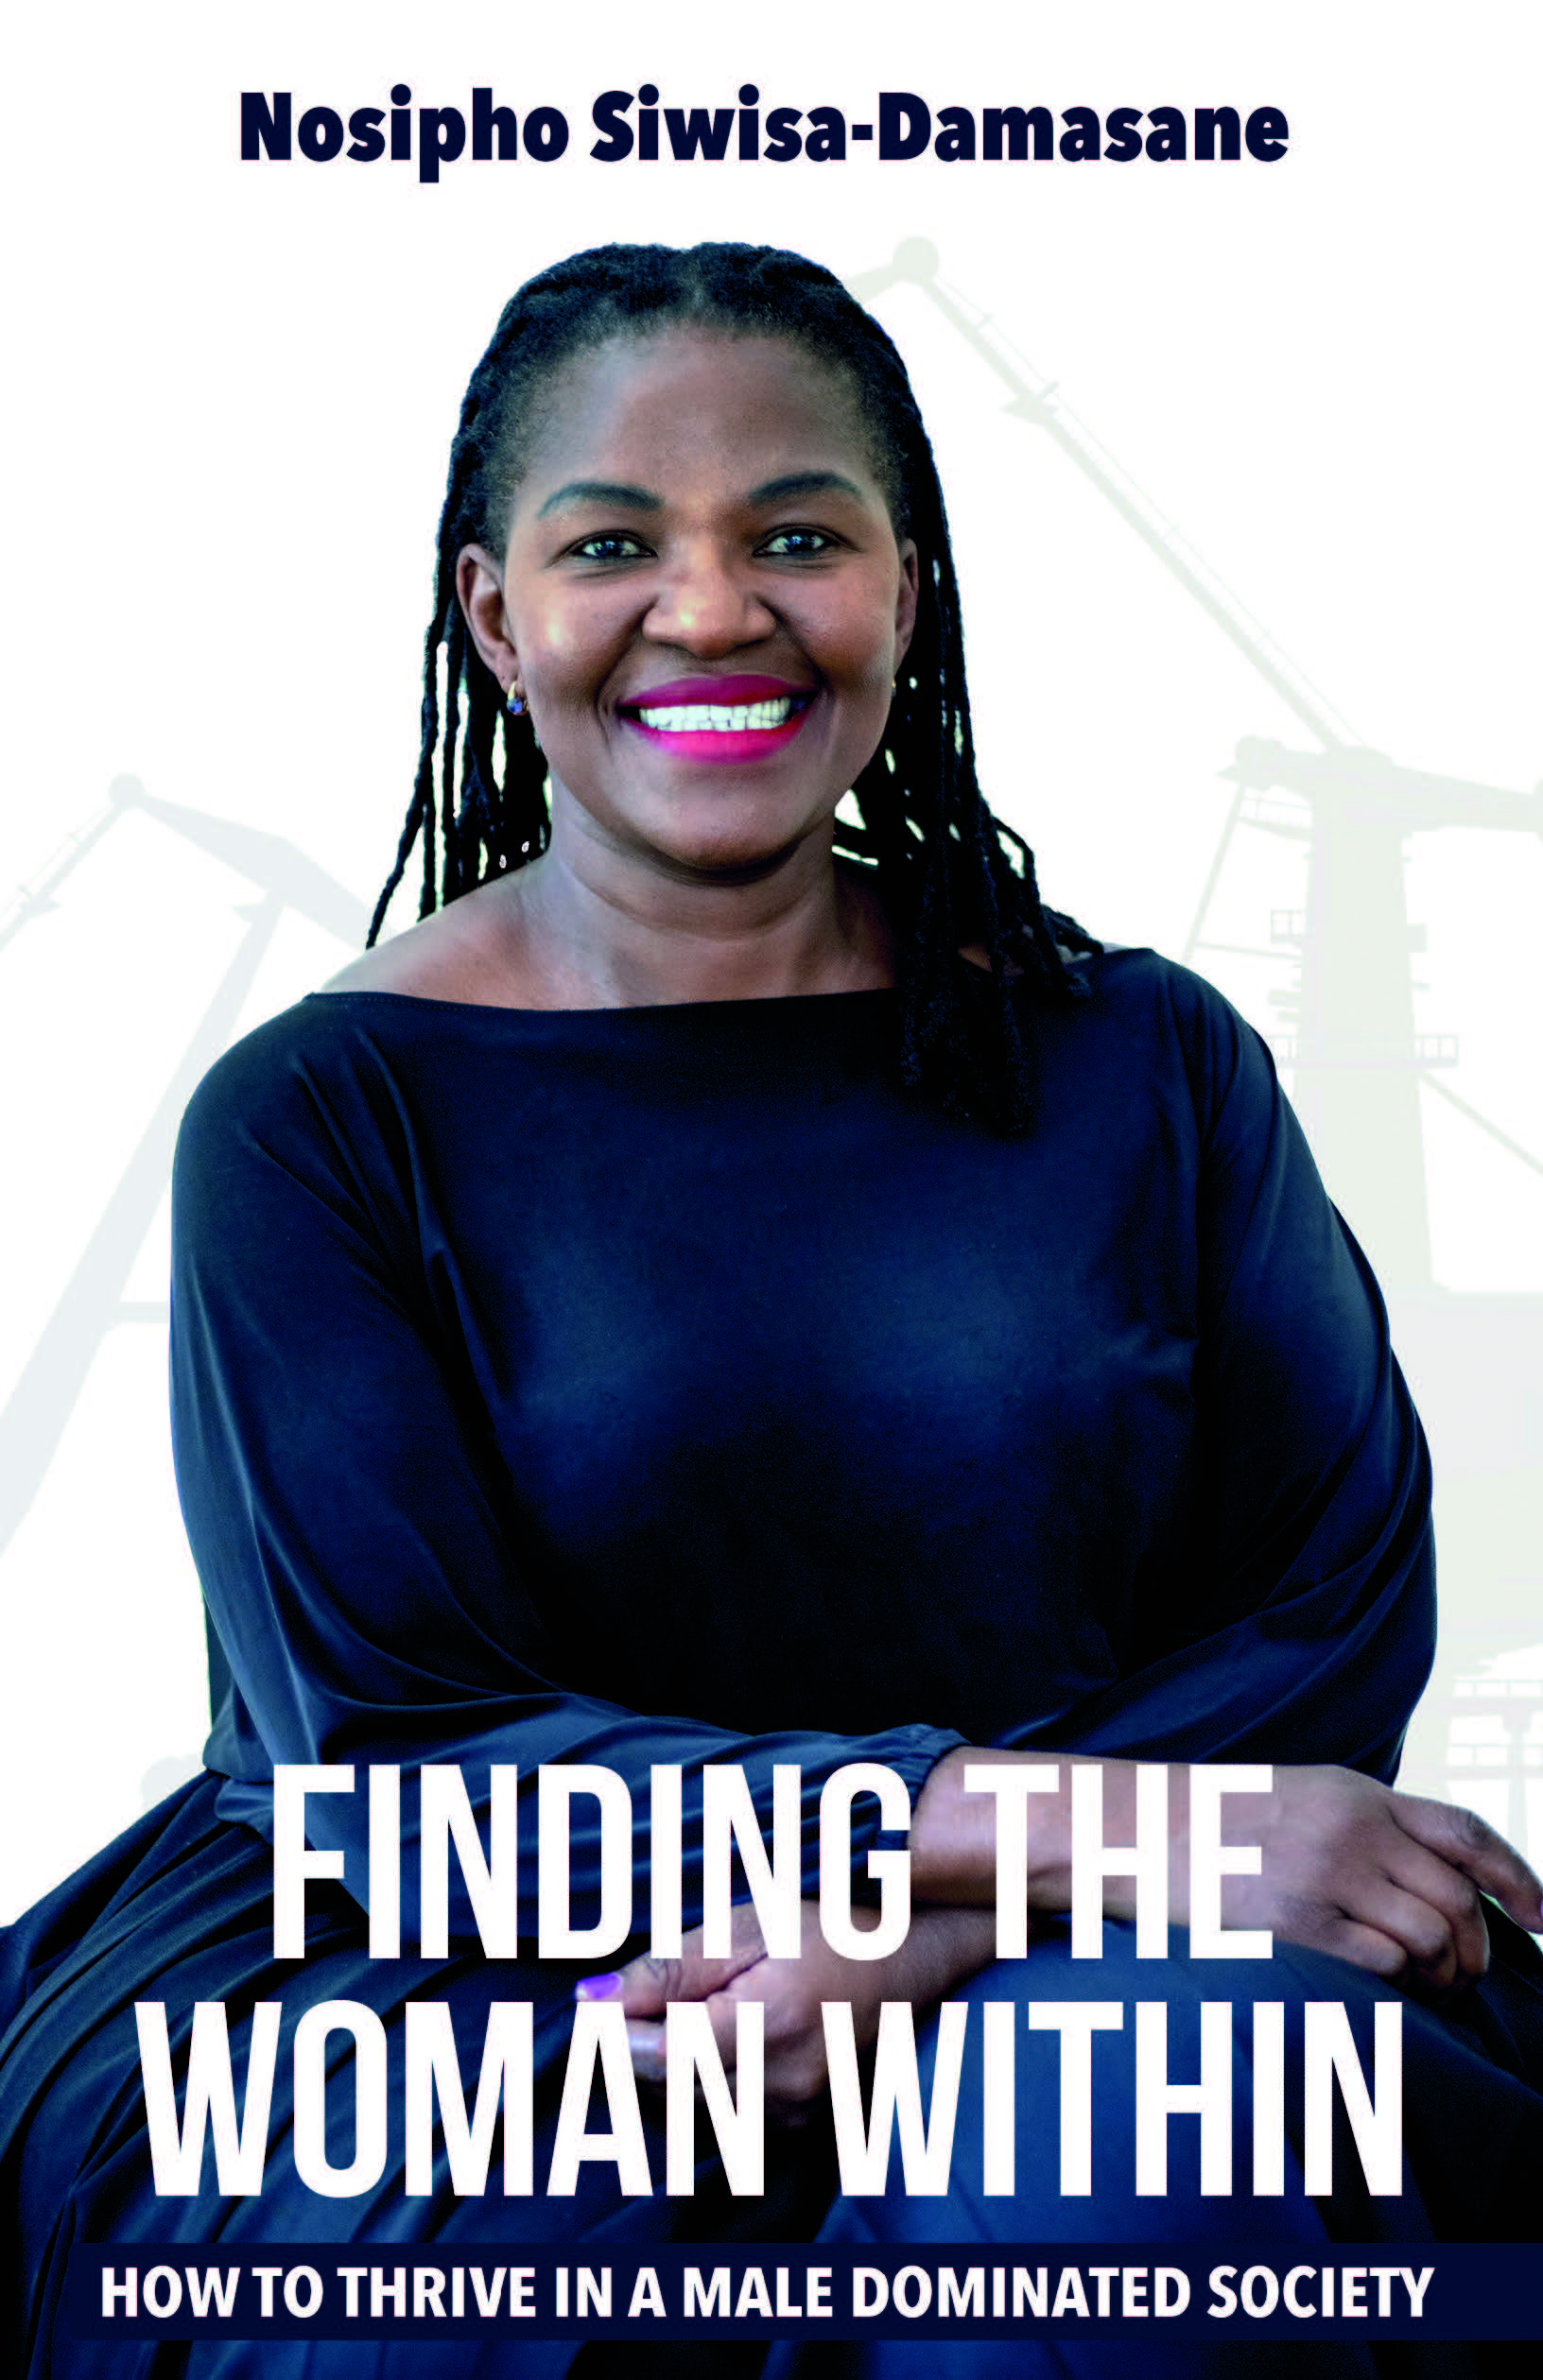 Finding the Woman Within by Nosipho Siwisa-Damasane